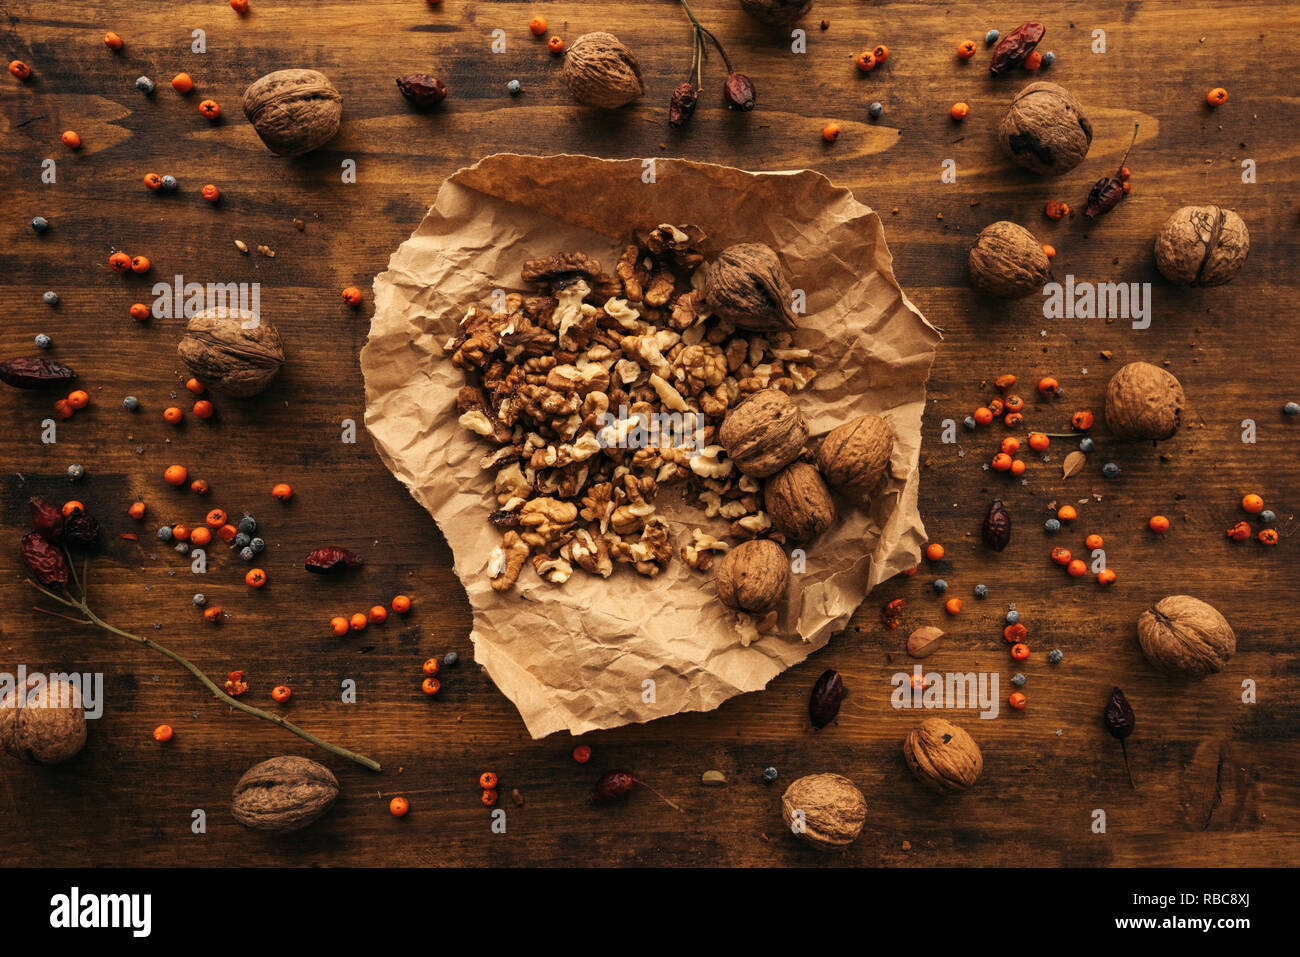 Ripe walnut fruit on table, top view of healthy antioxidant food - Stock Image